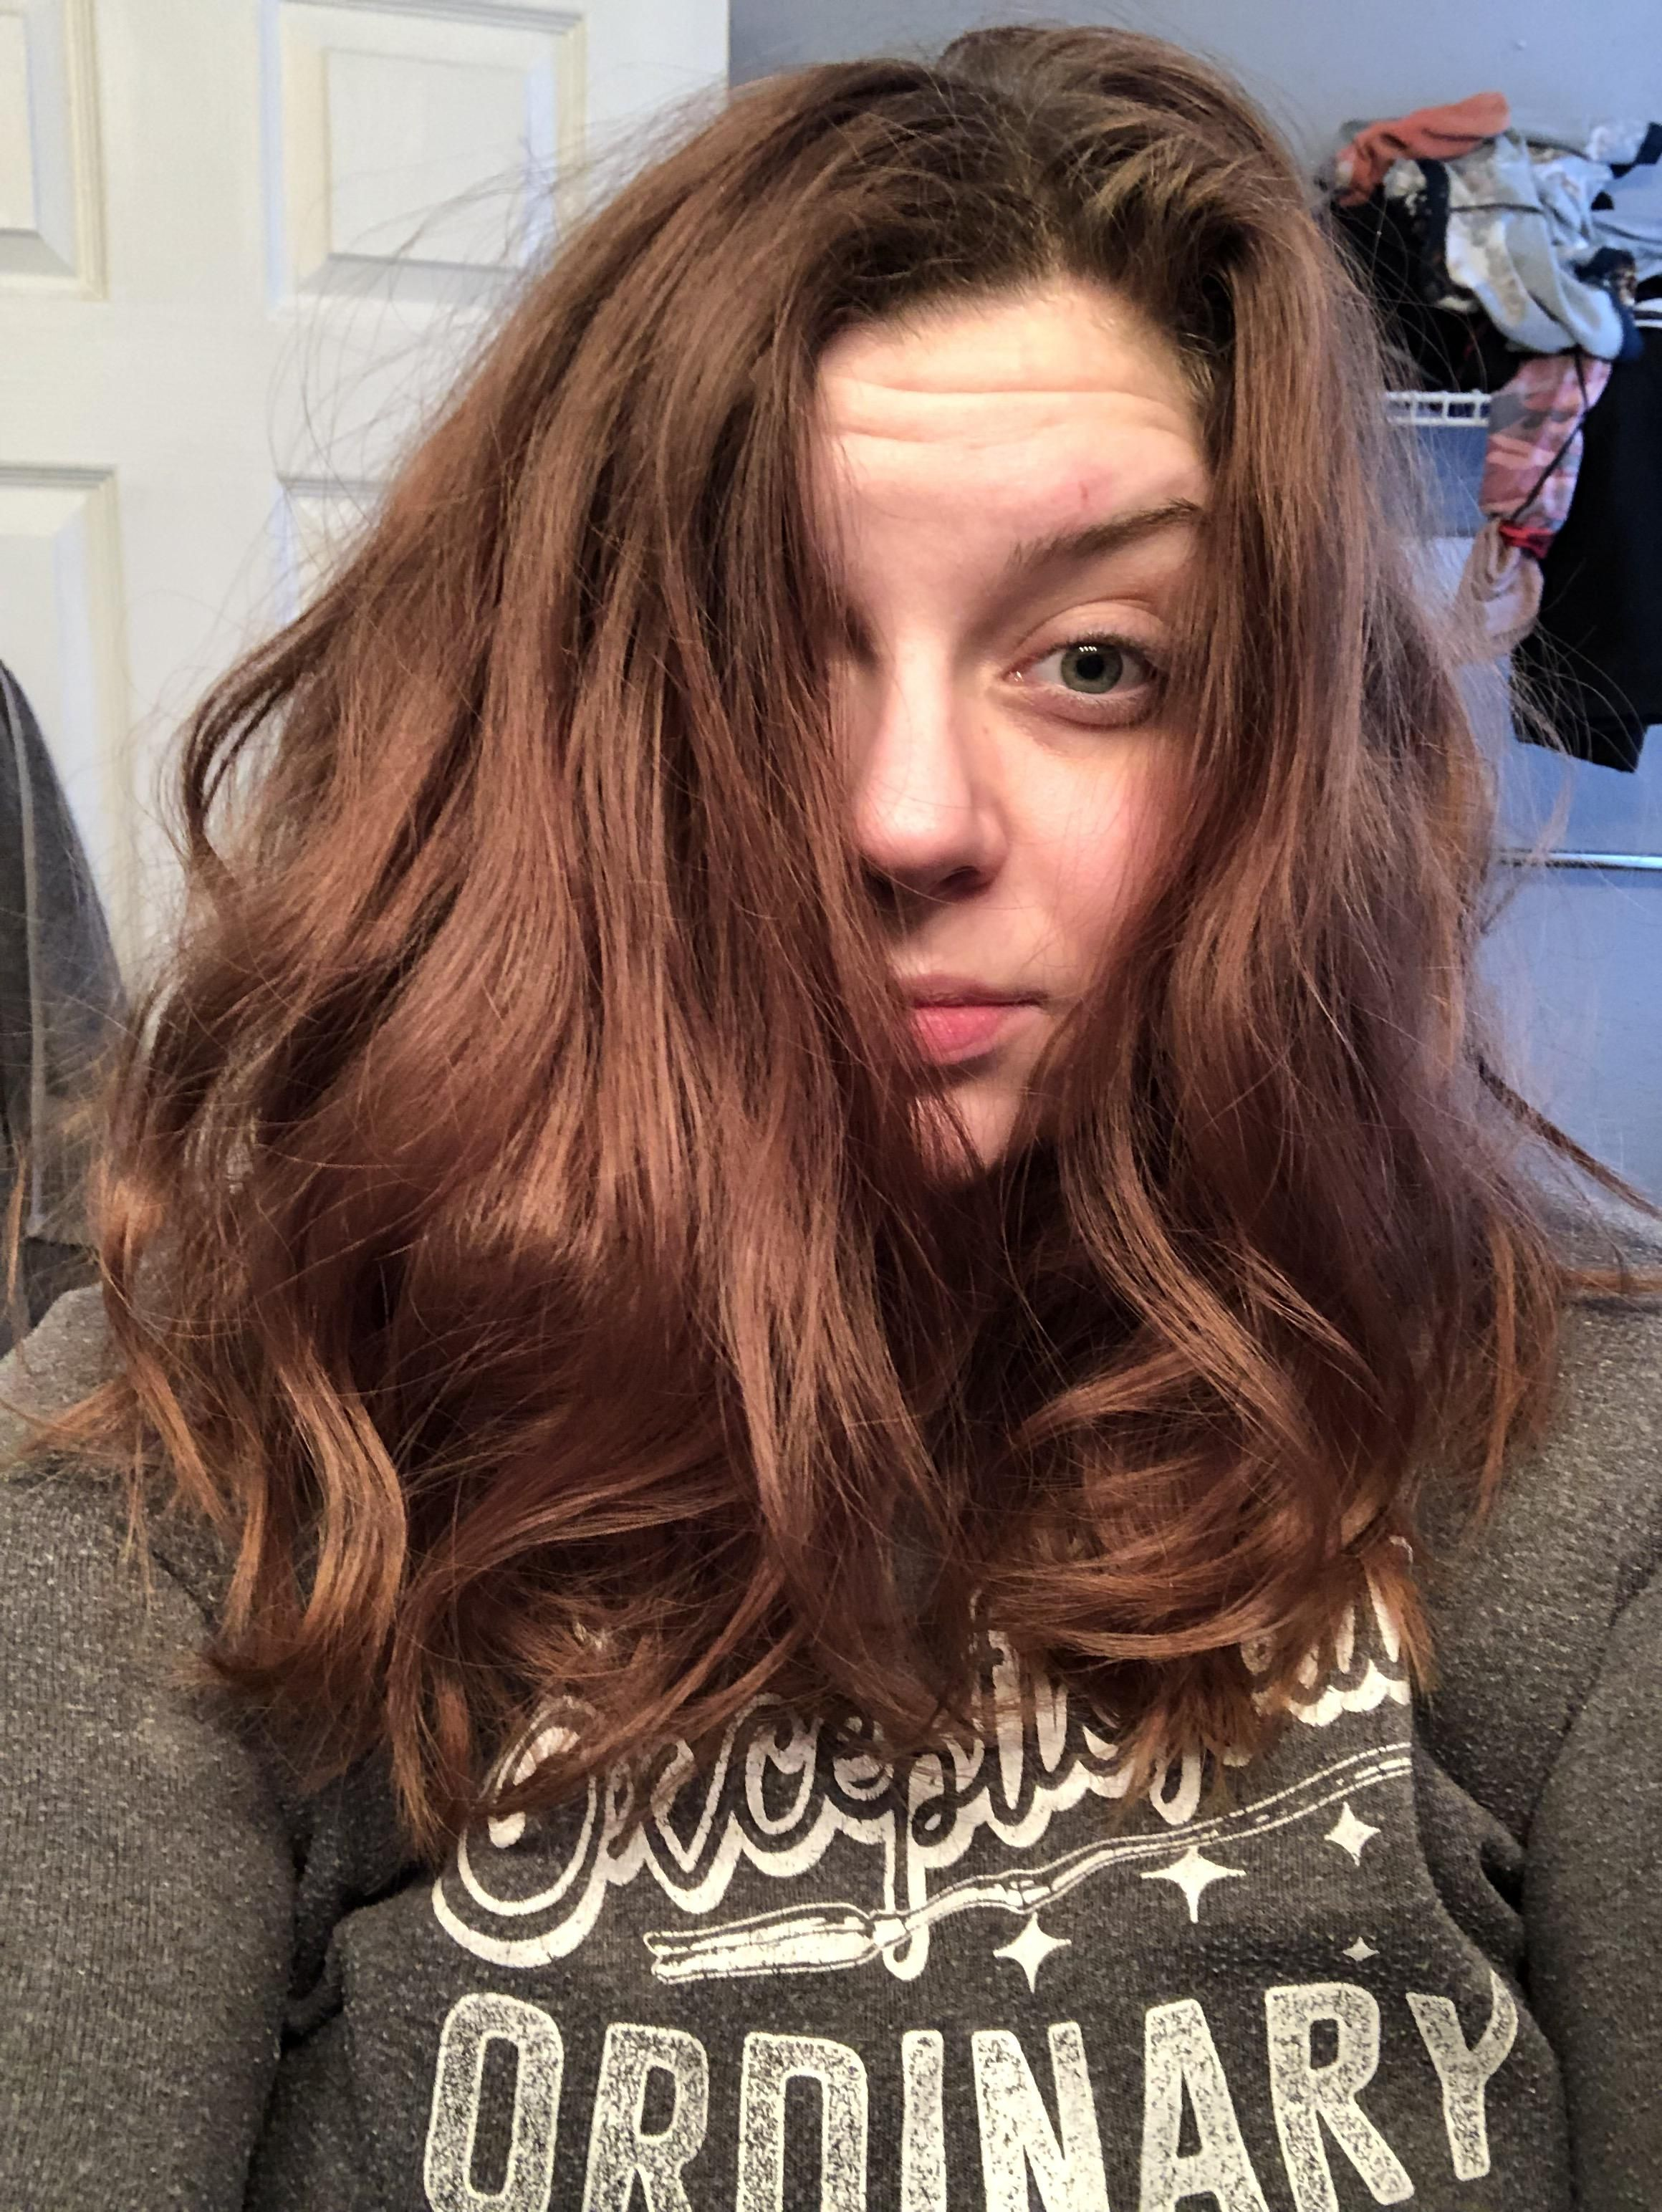 I Desperately Need Help As I Dont Know How To Care For My Hair Reddit Hair Beauty Skin Deals Me Fashion Love Cute Hair Celebrity Hair Colors My Hair